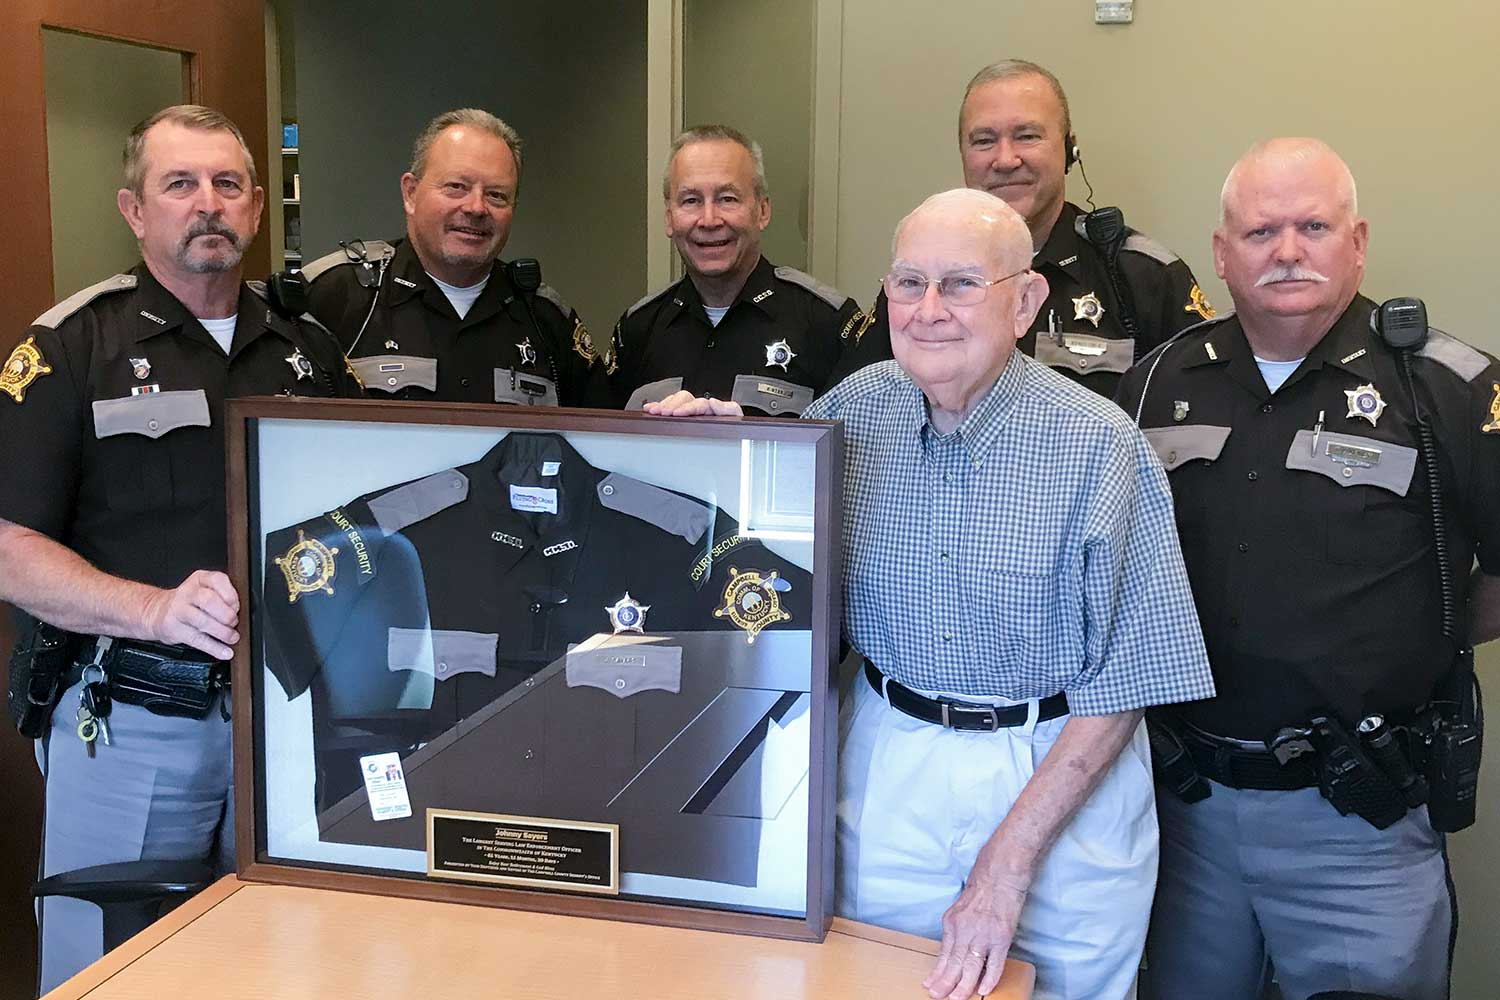 Members of the Campbell County Sheriff's Office presented retired deputy John Sayers with a his framed uniform. (Photo submitted)